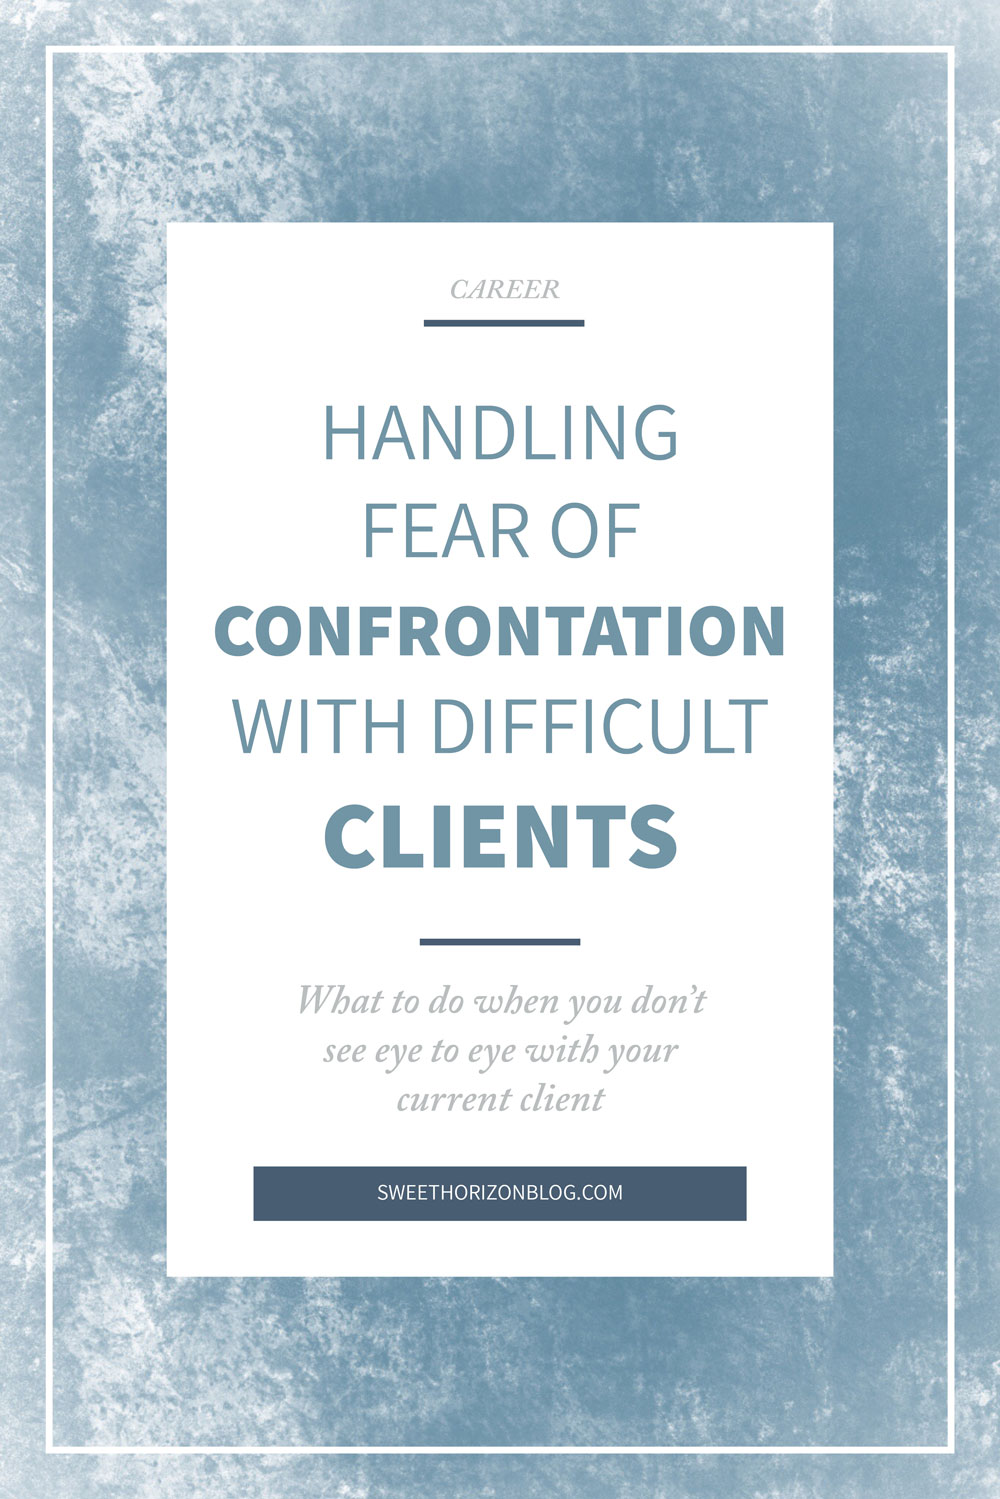 Fear of Confrontation with Difficult Clients from www.sweethorizonblog.com